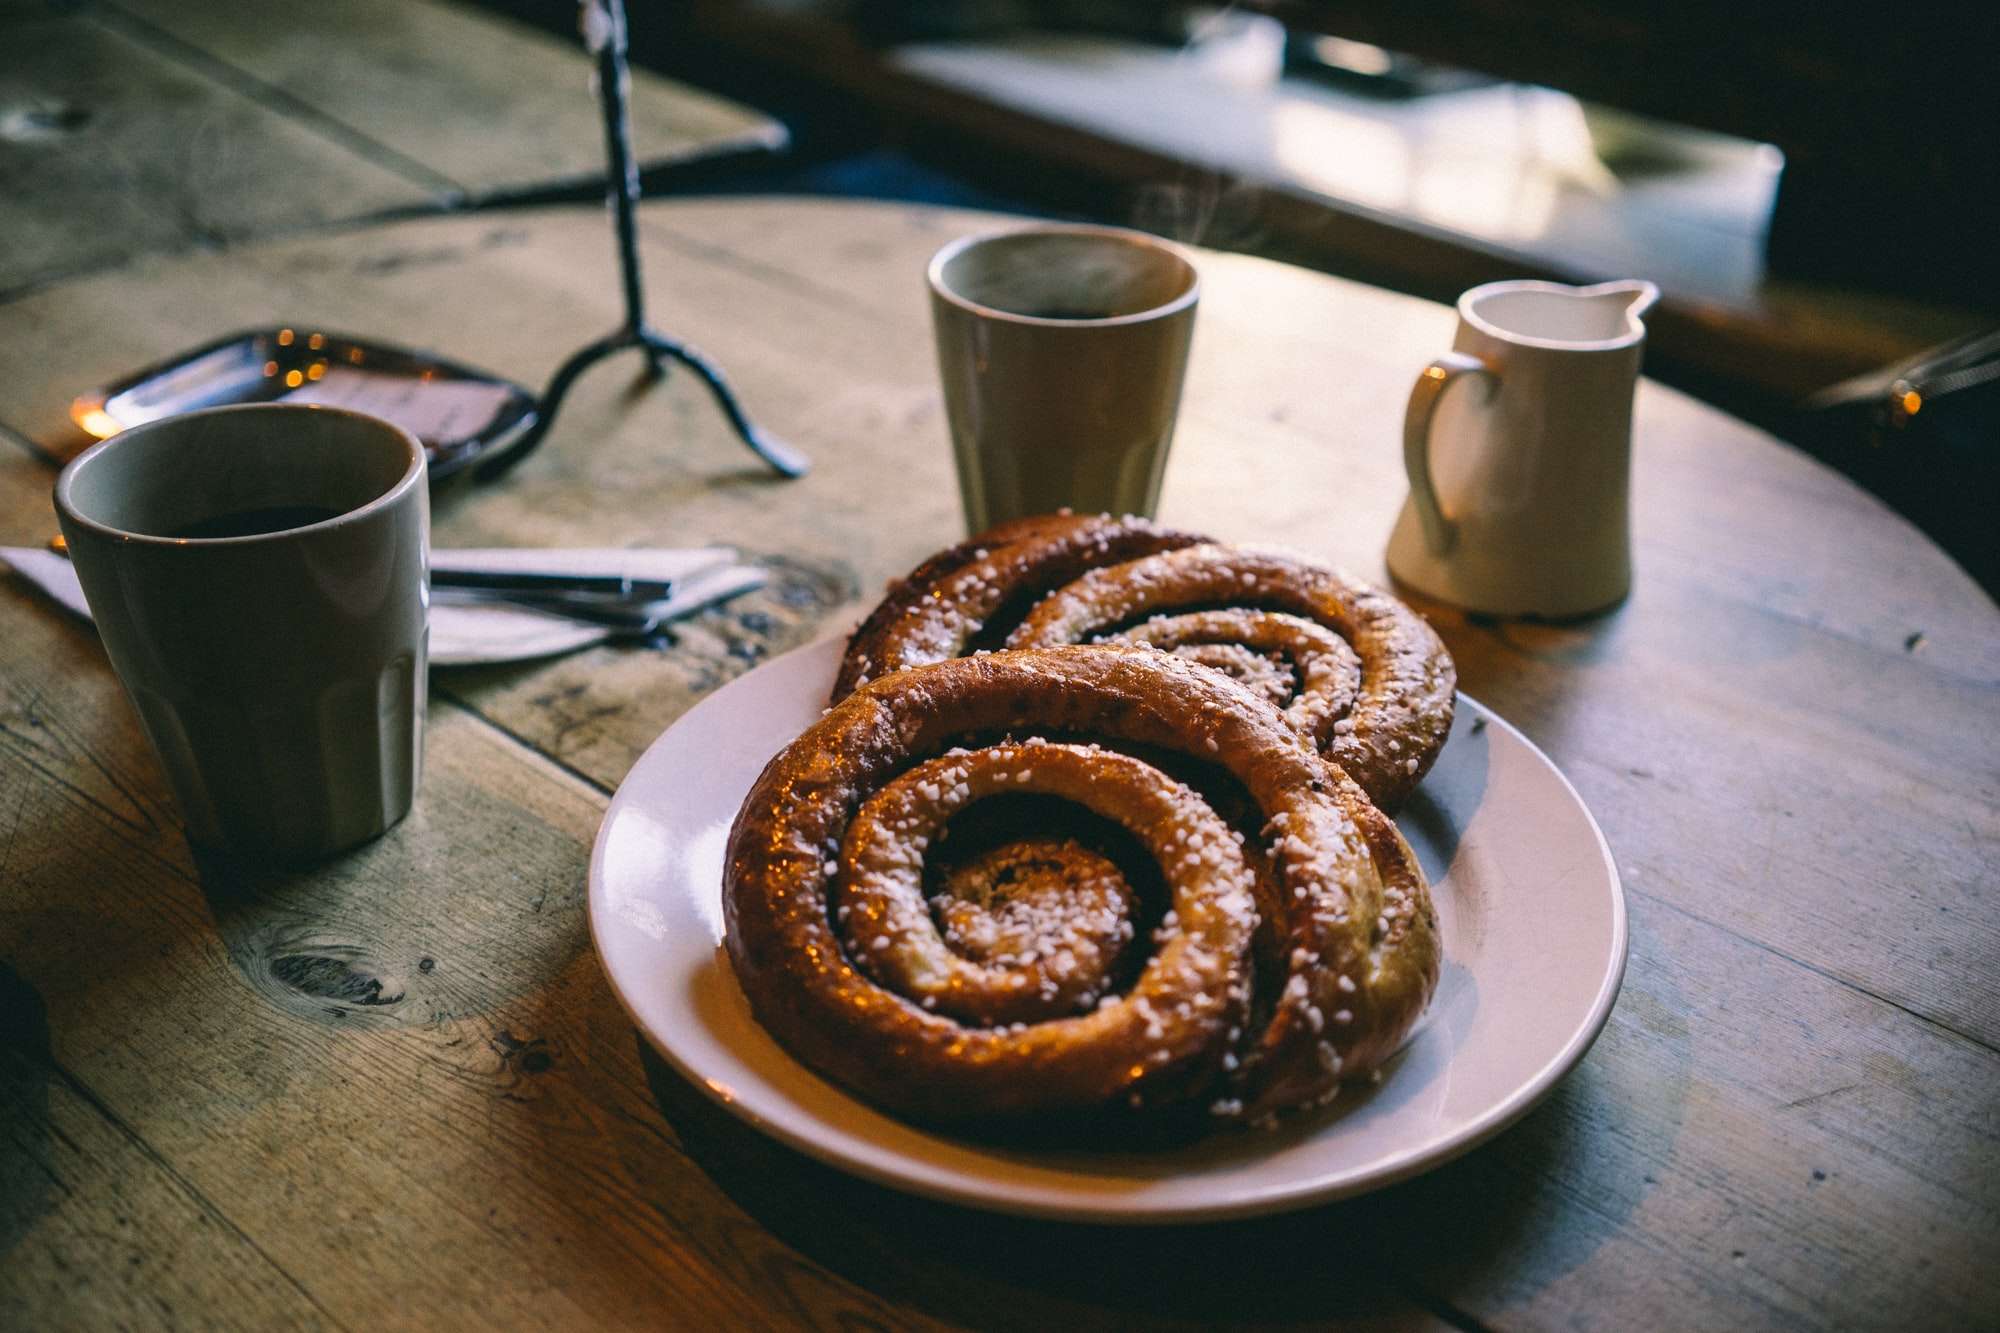 Two large pastries on a white plate with two coffee mugs and cream on a round wooden table